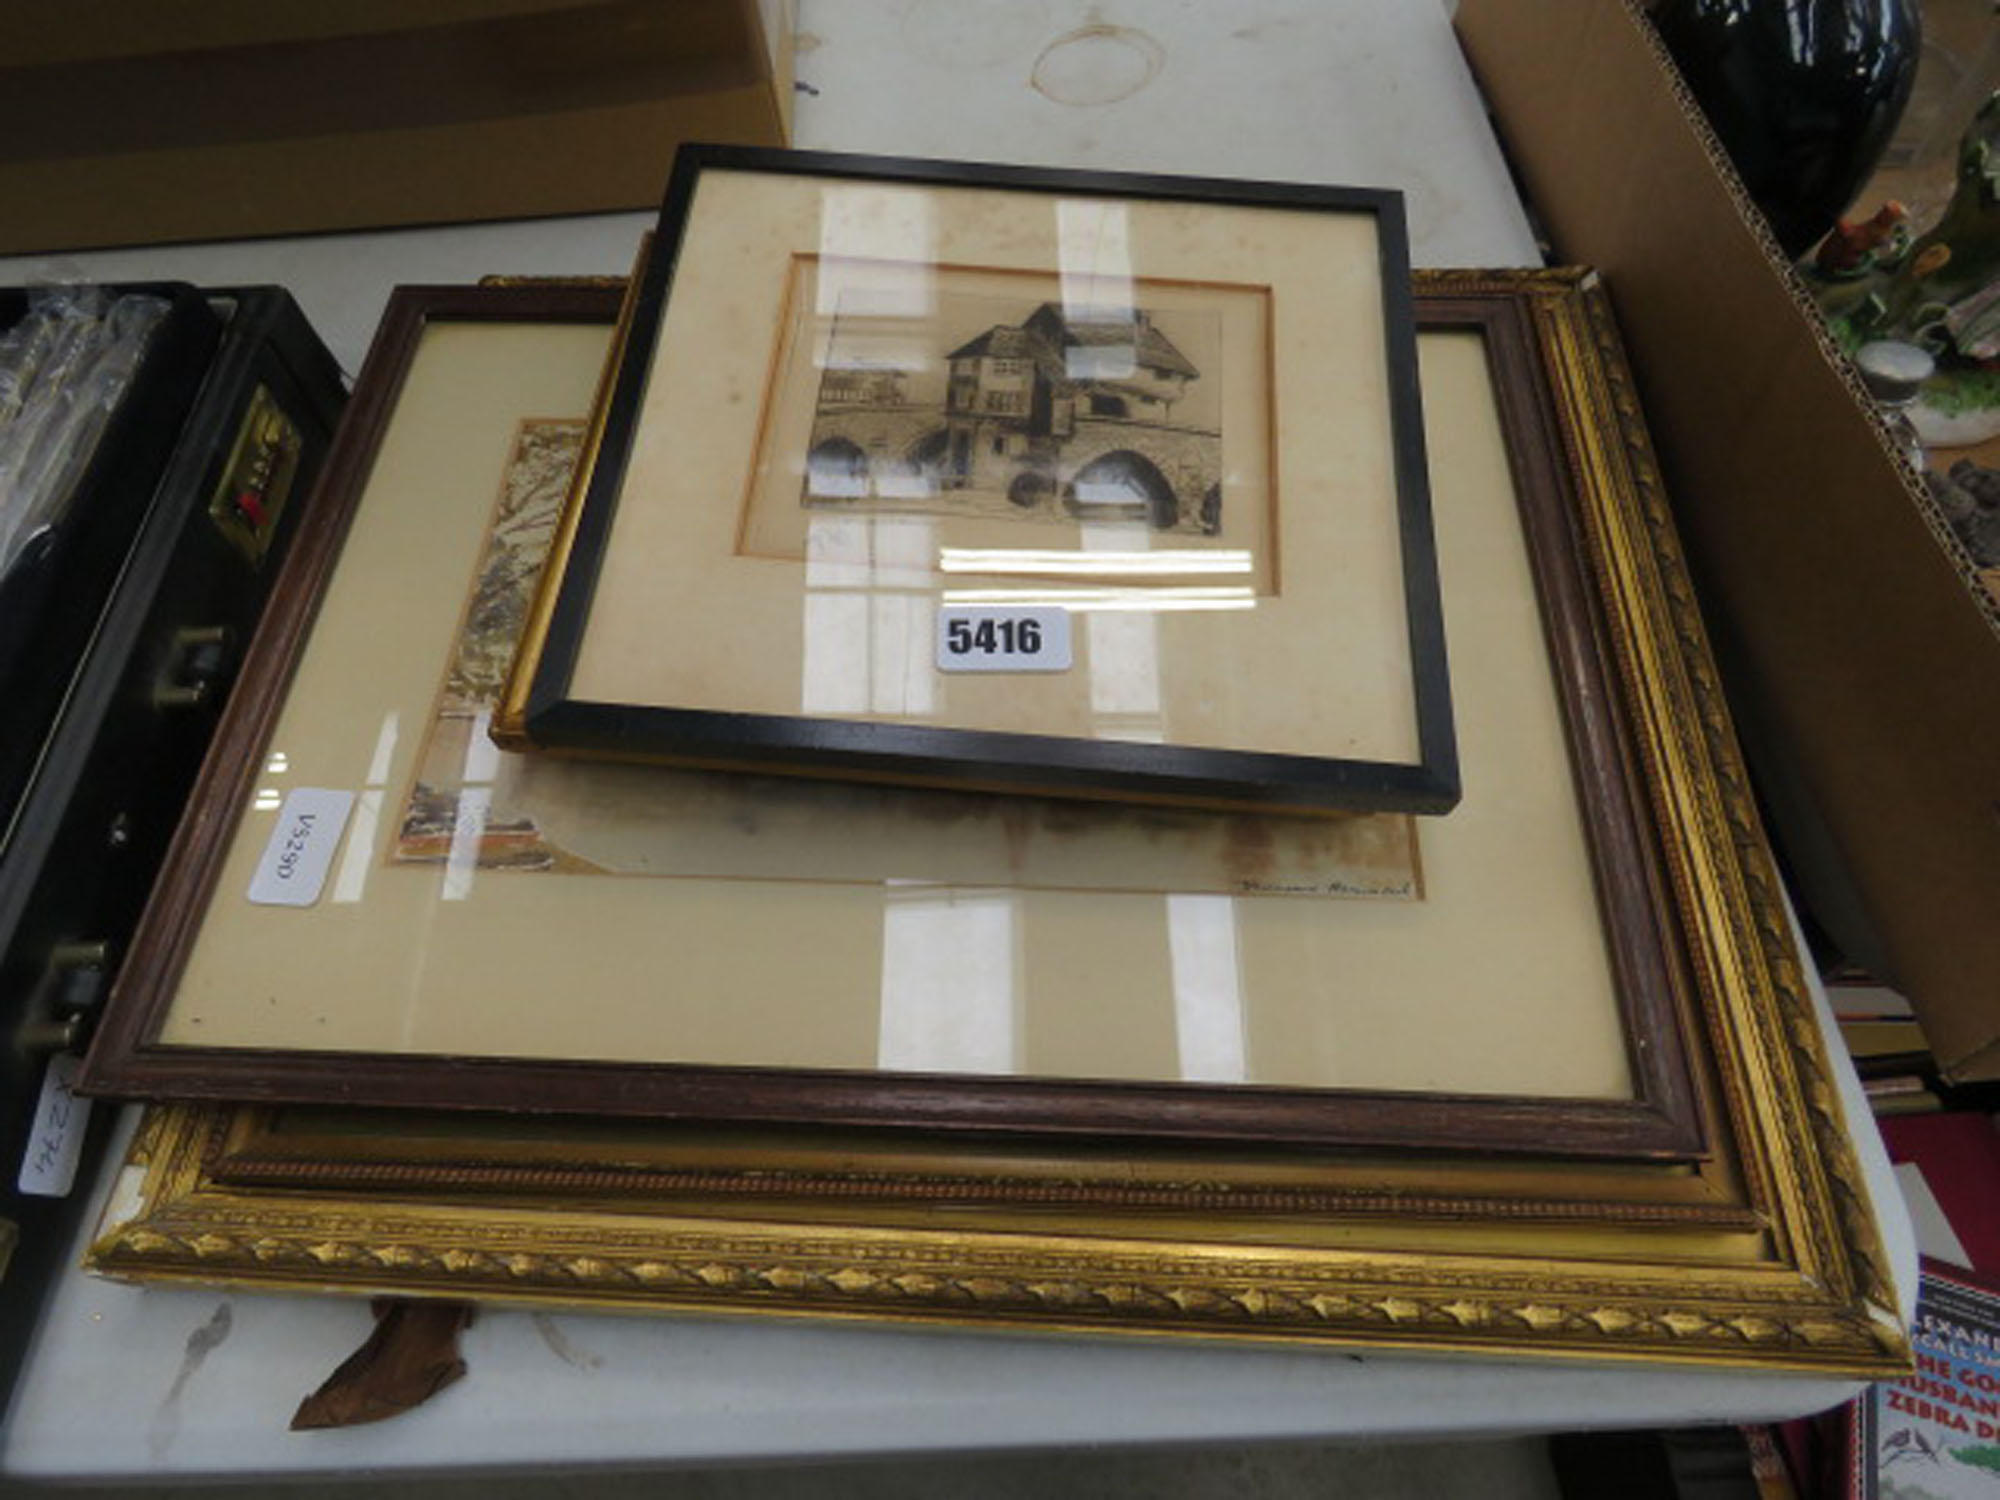 Quantity of paintings and prints incl. Bedford bridge, country cottages, river with trees etc.